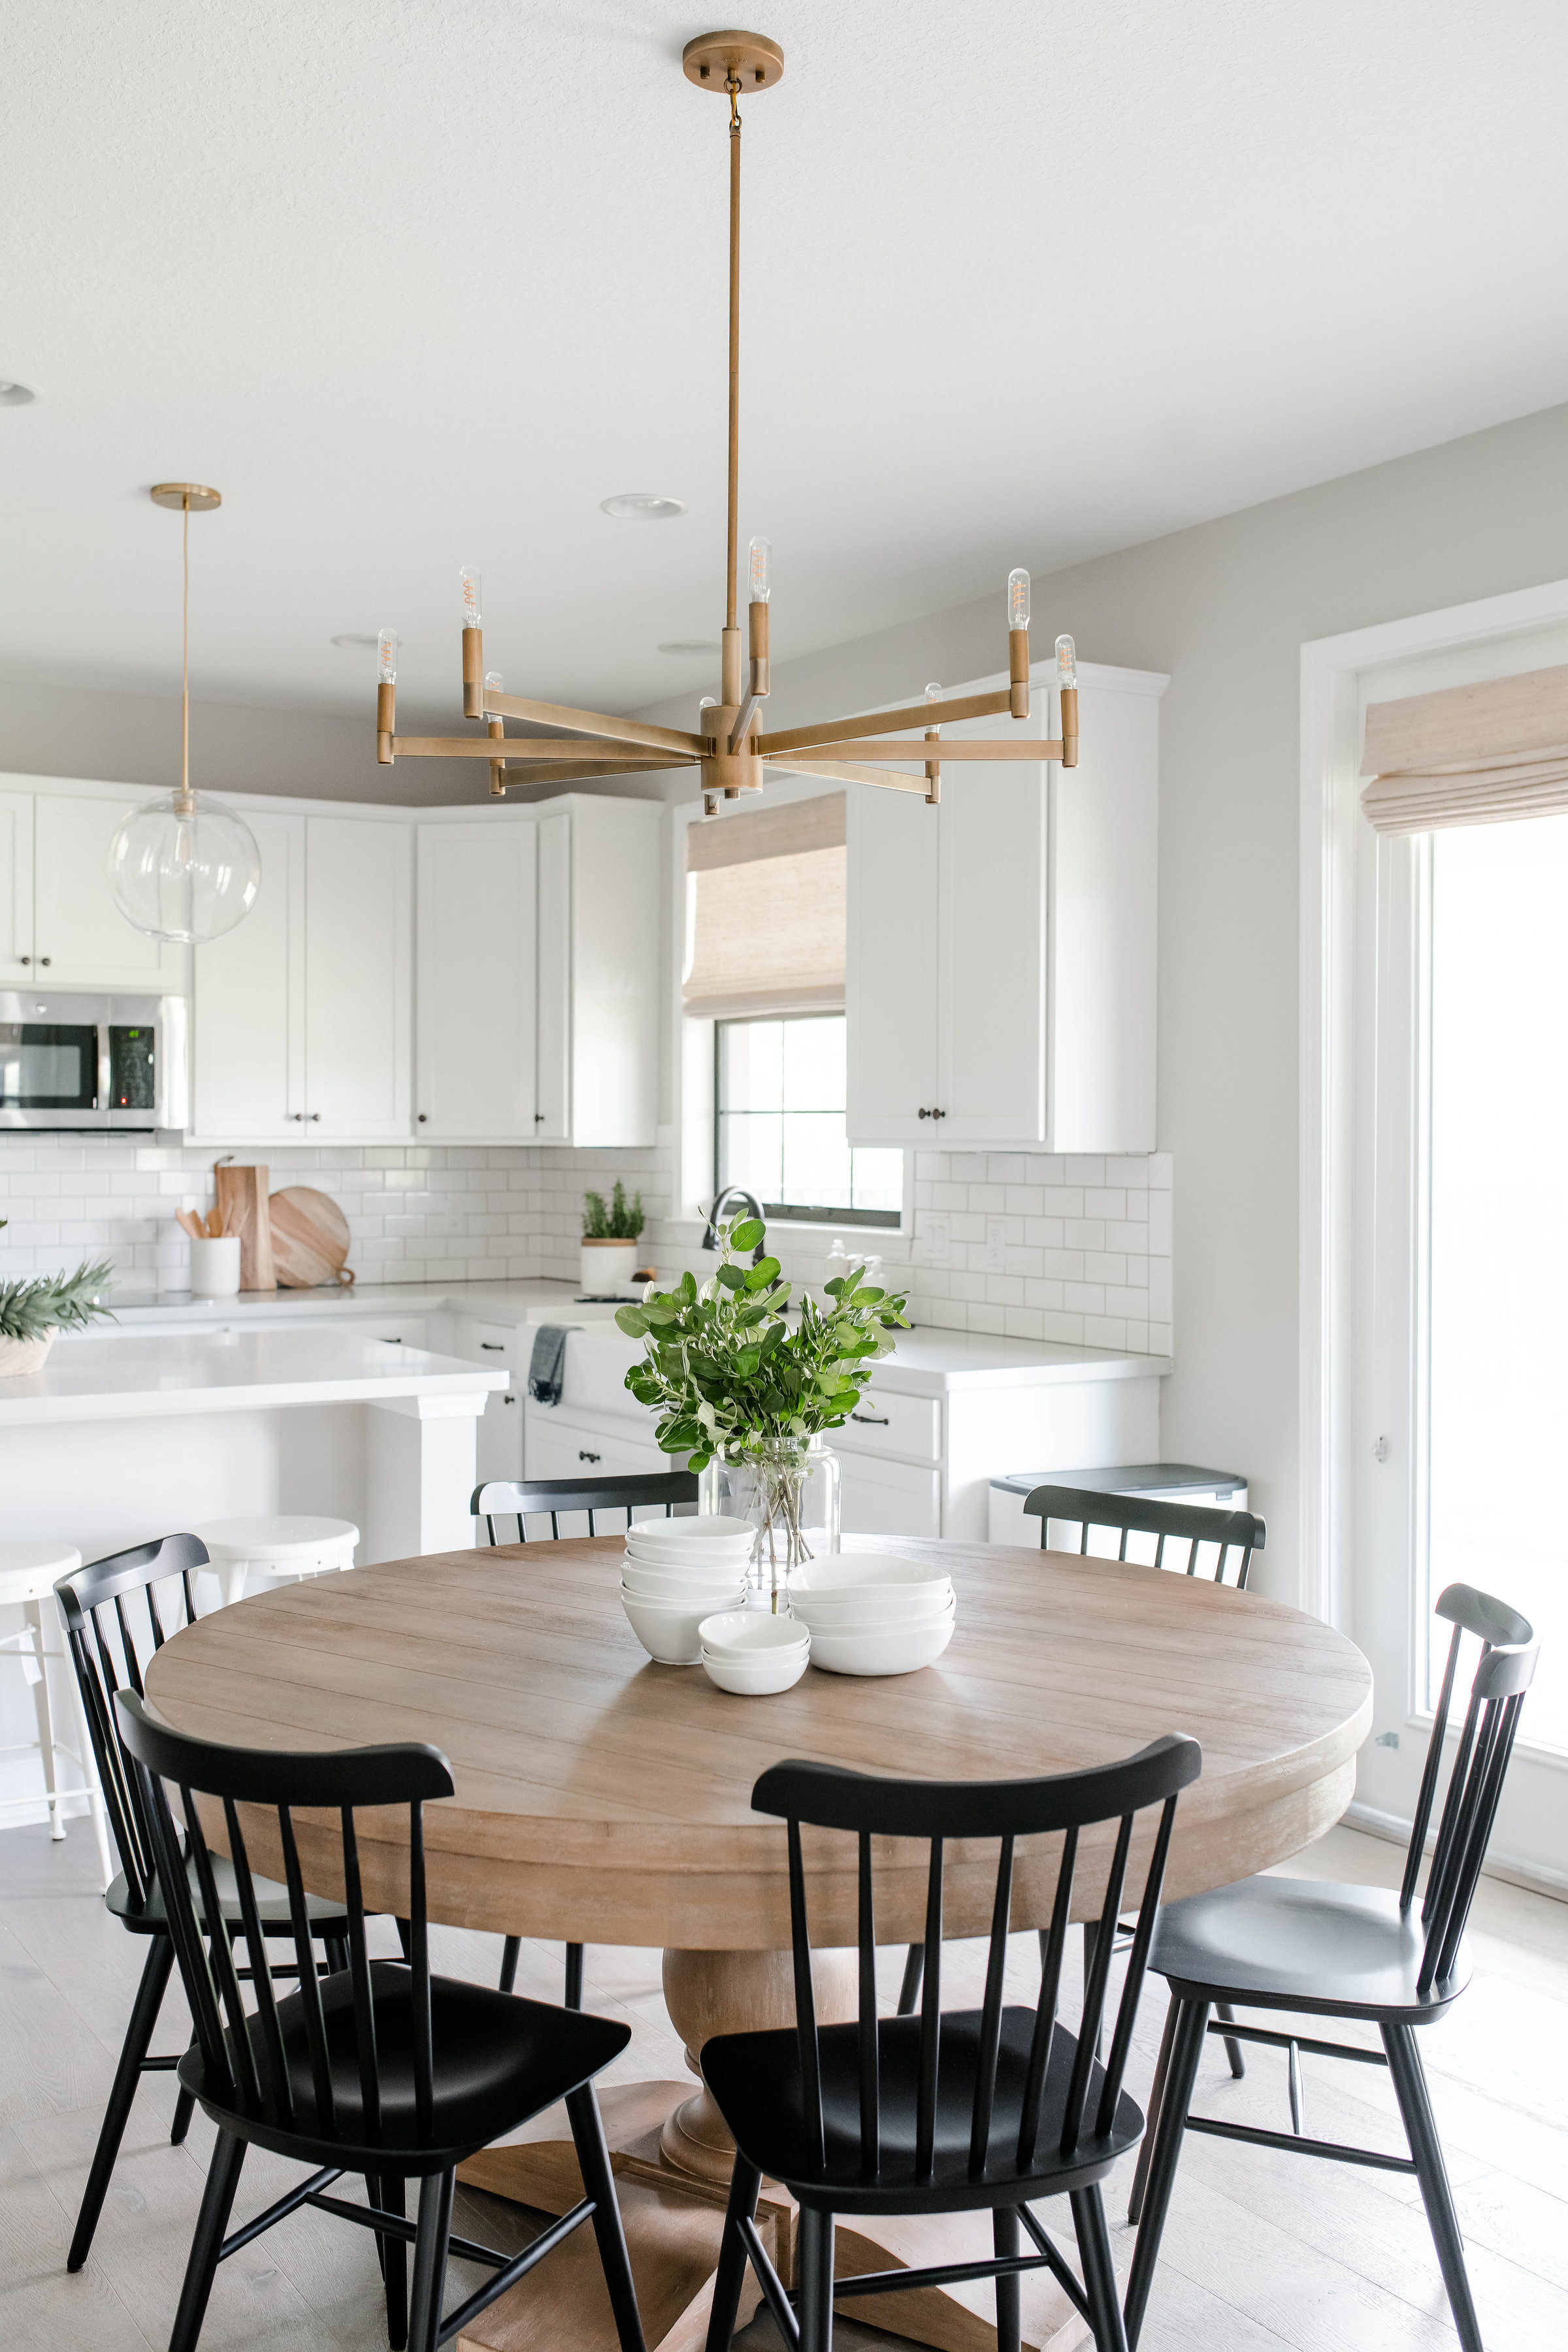 parkland project dining room - the habitat collective - interior design